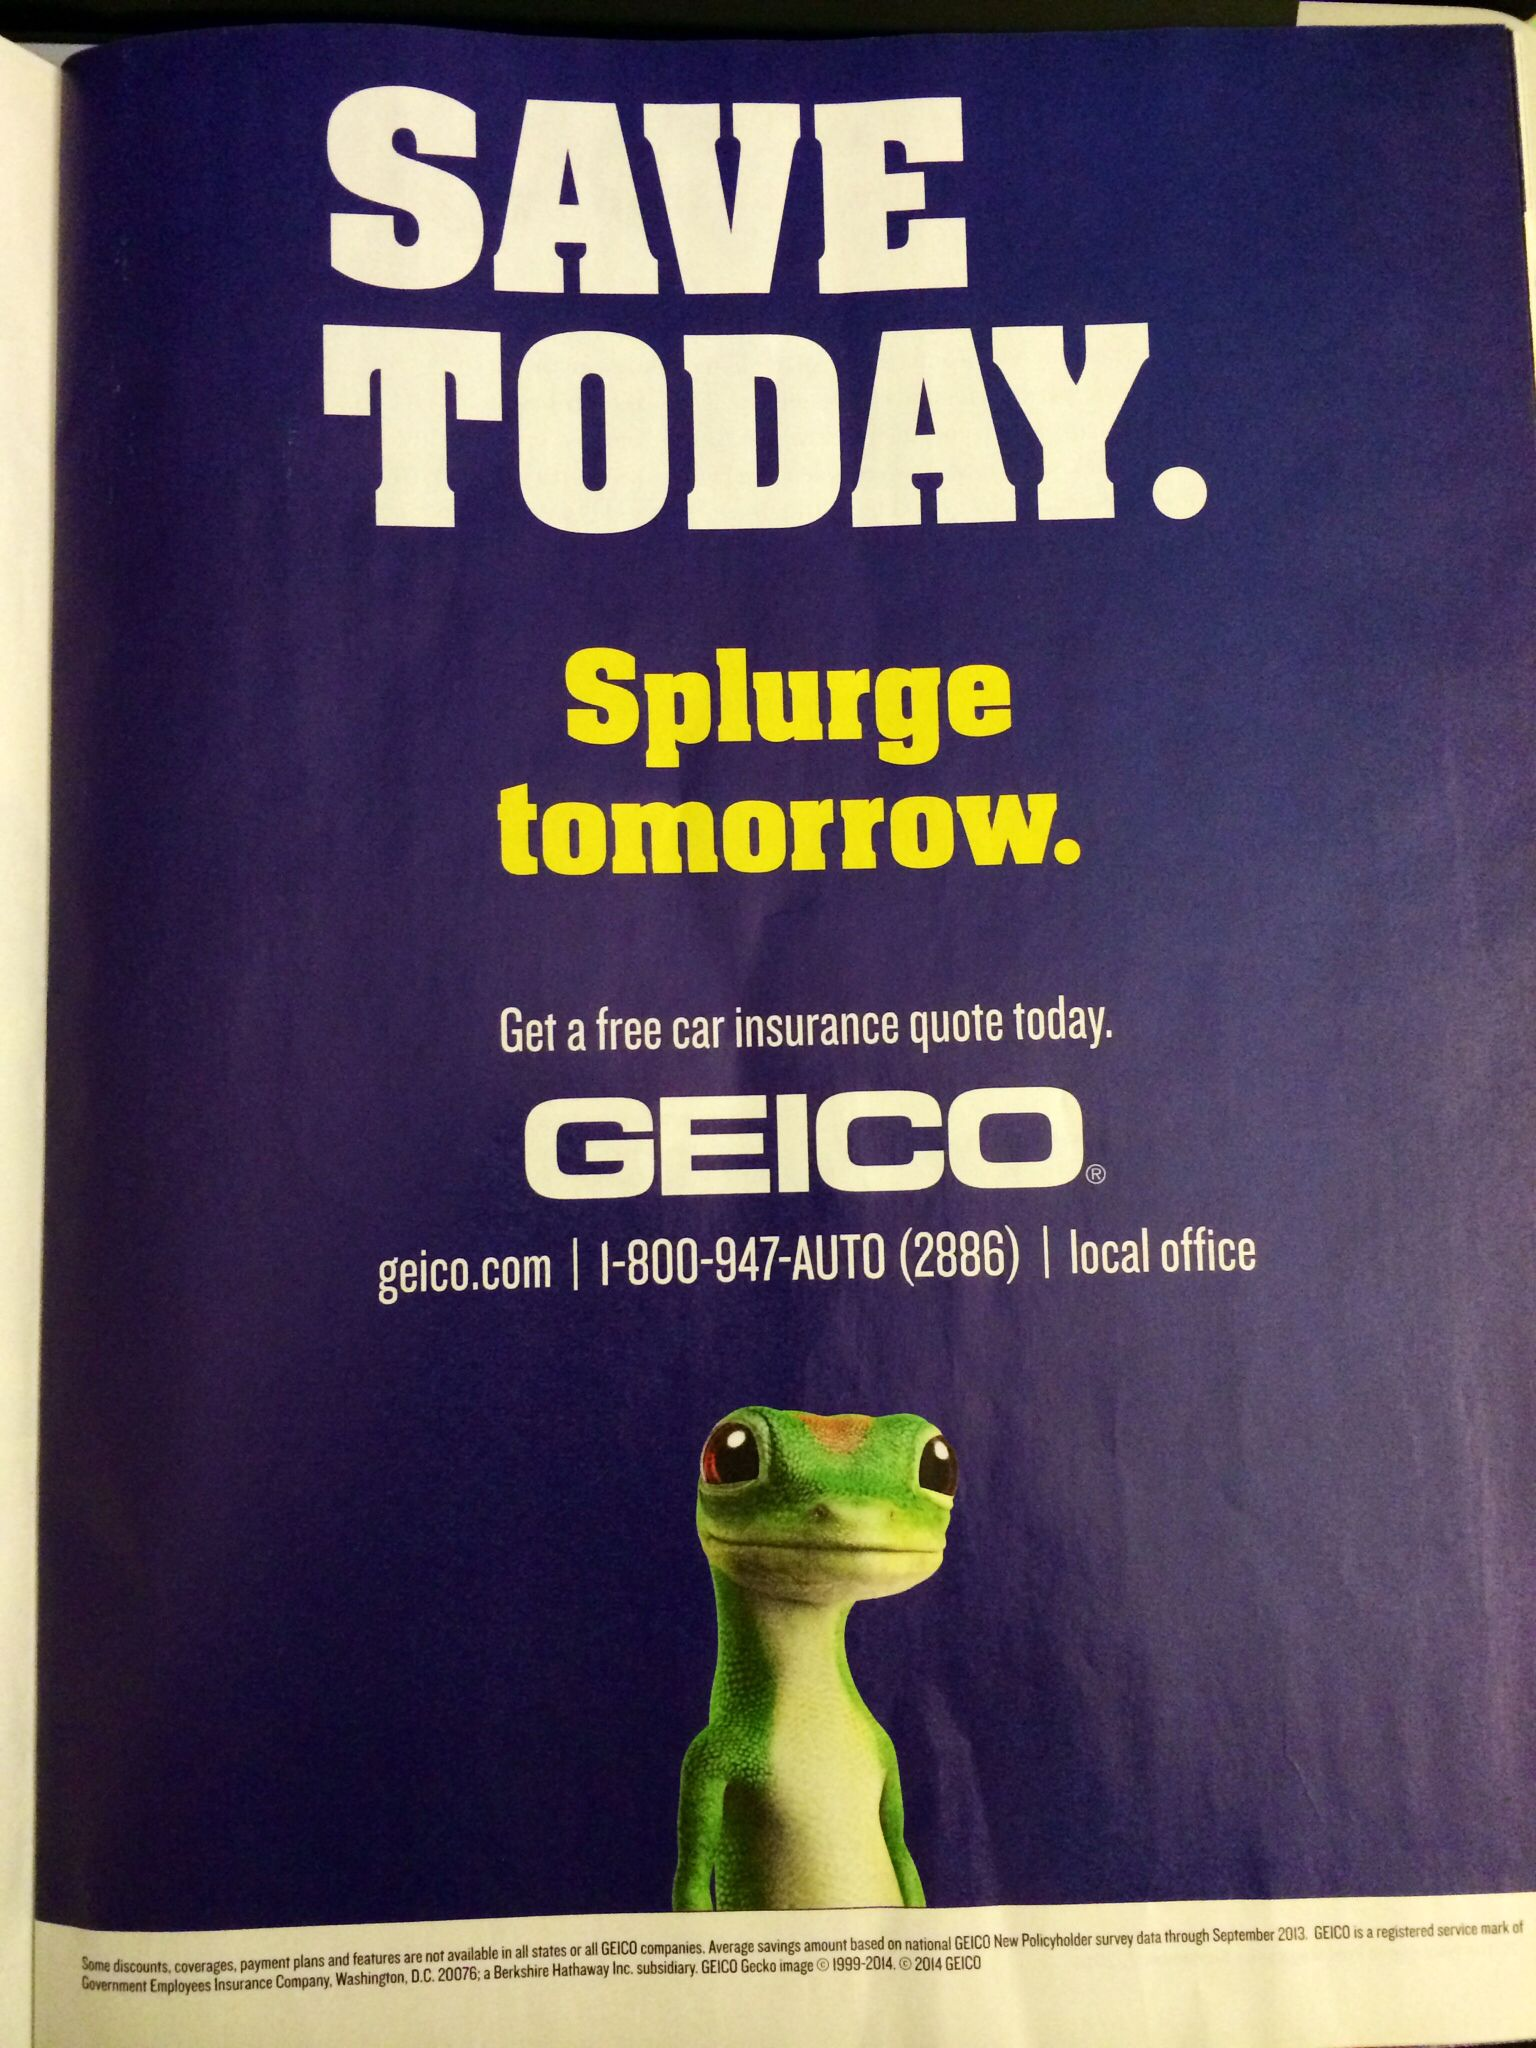 Geico Seems To Rein King Over The Advertising Community With Their